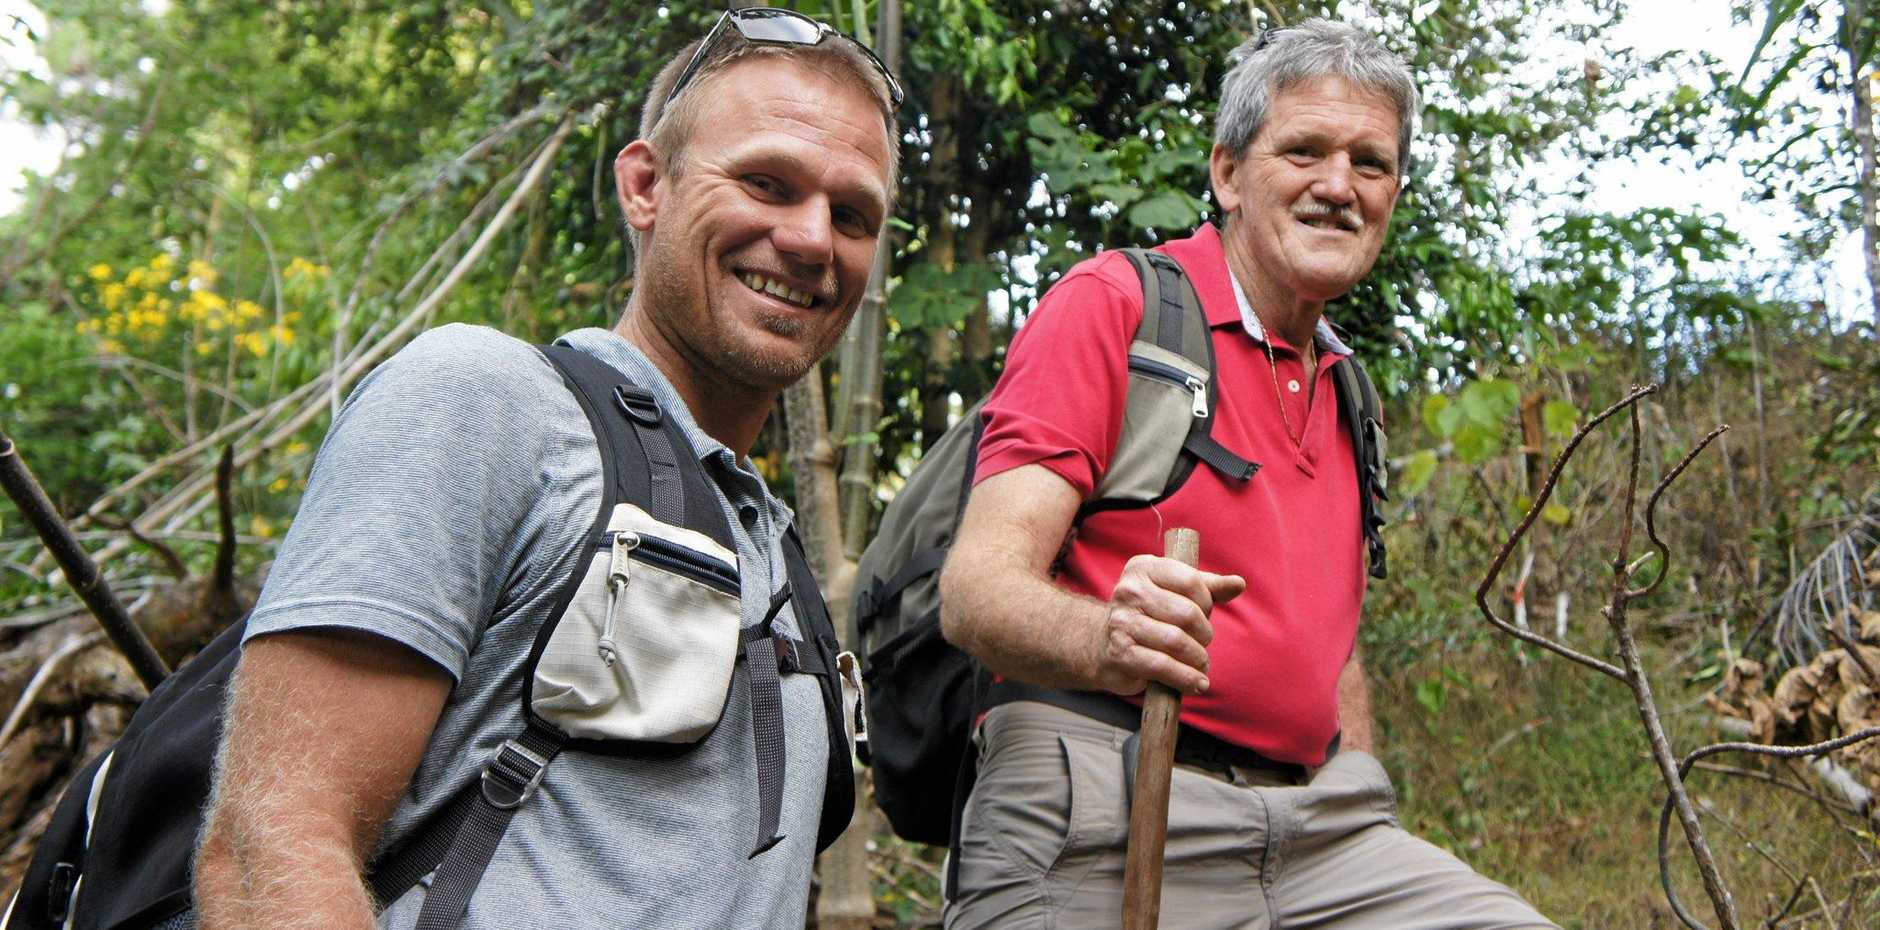 CHALLENGE AHEAD: Gary James and his son, Brad, in training for the Salvation Army Kokoka Trek 2016.